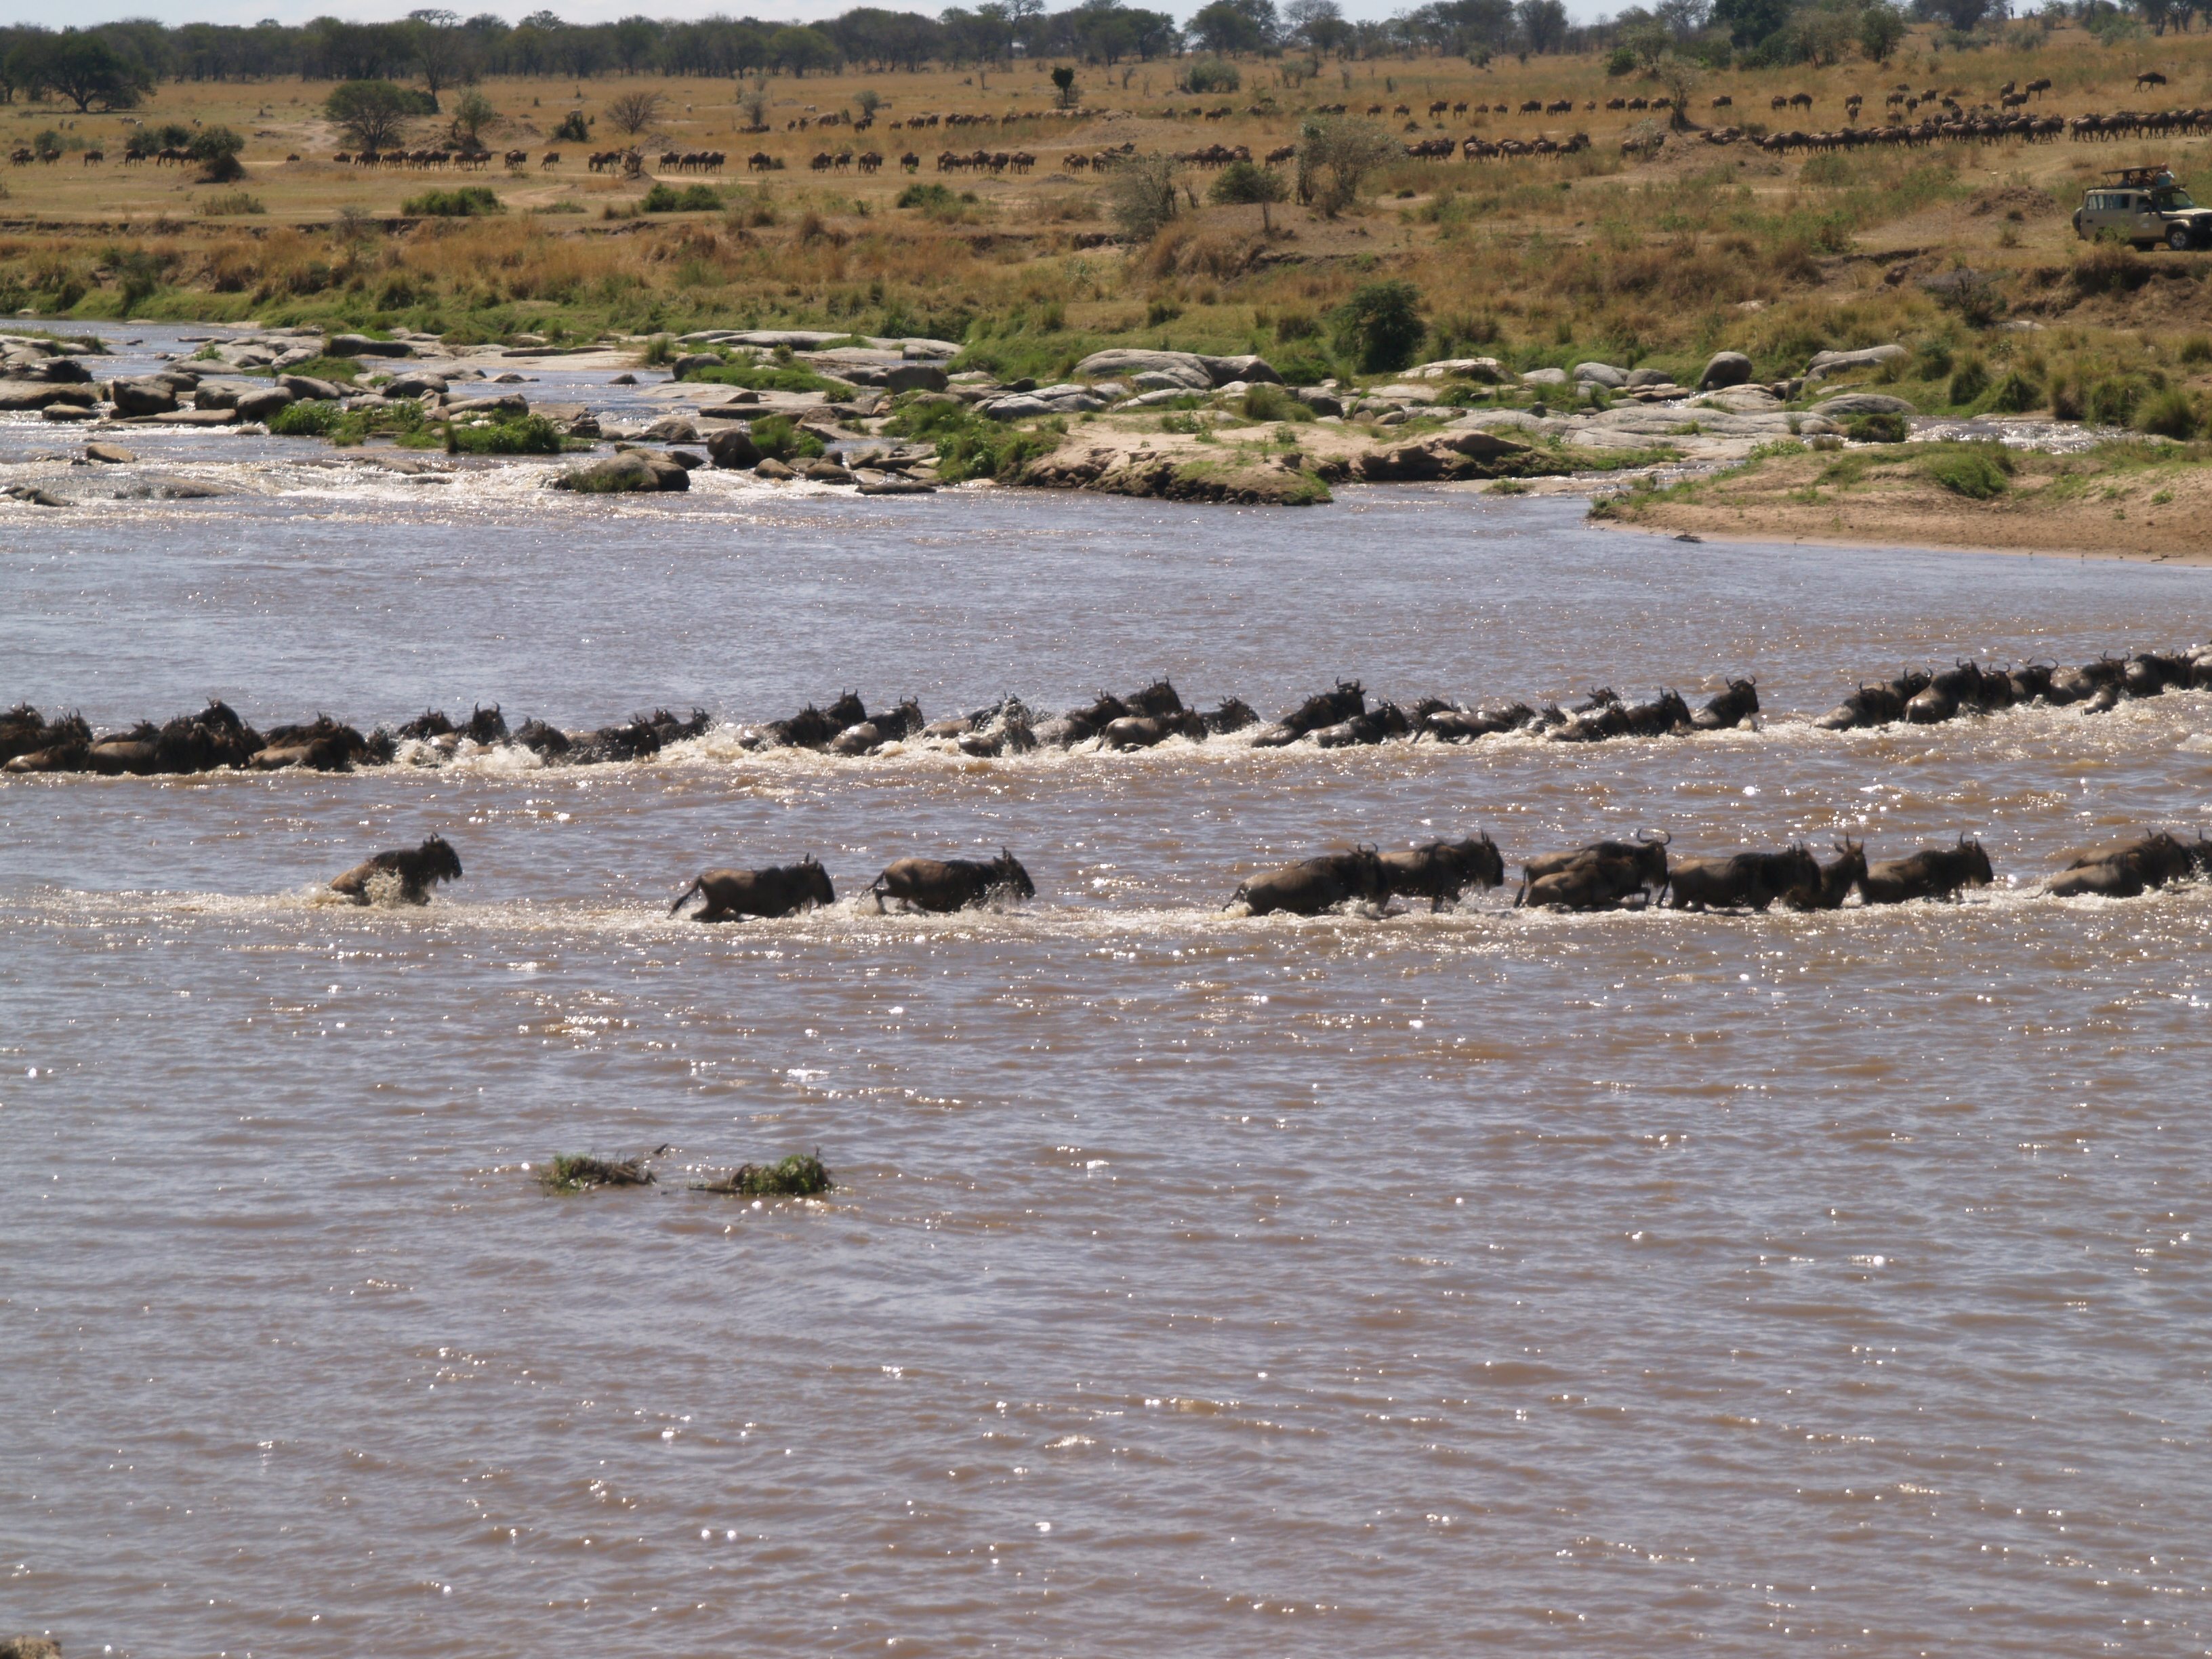 pictures from some of the other crossings